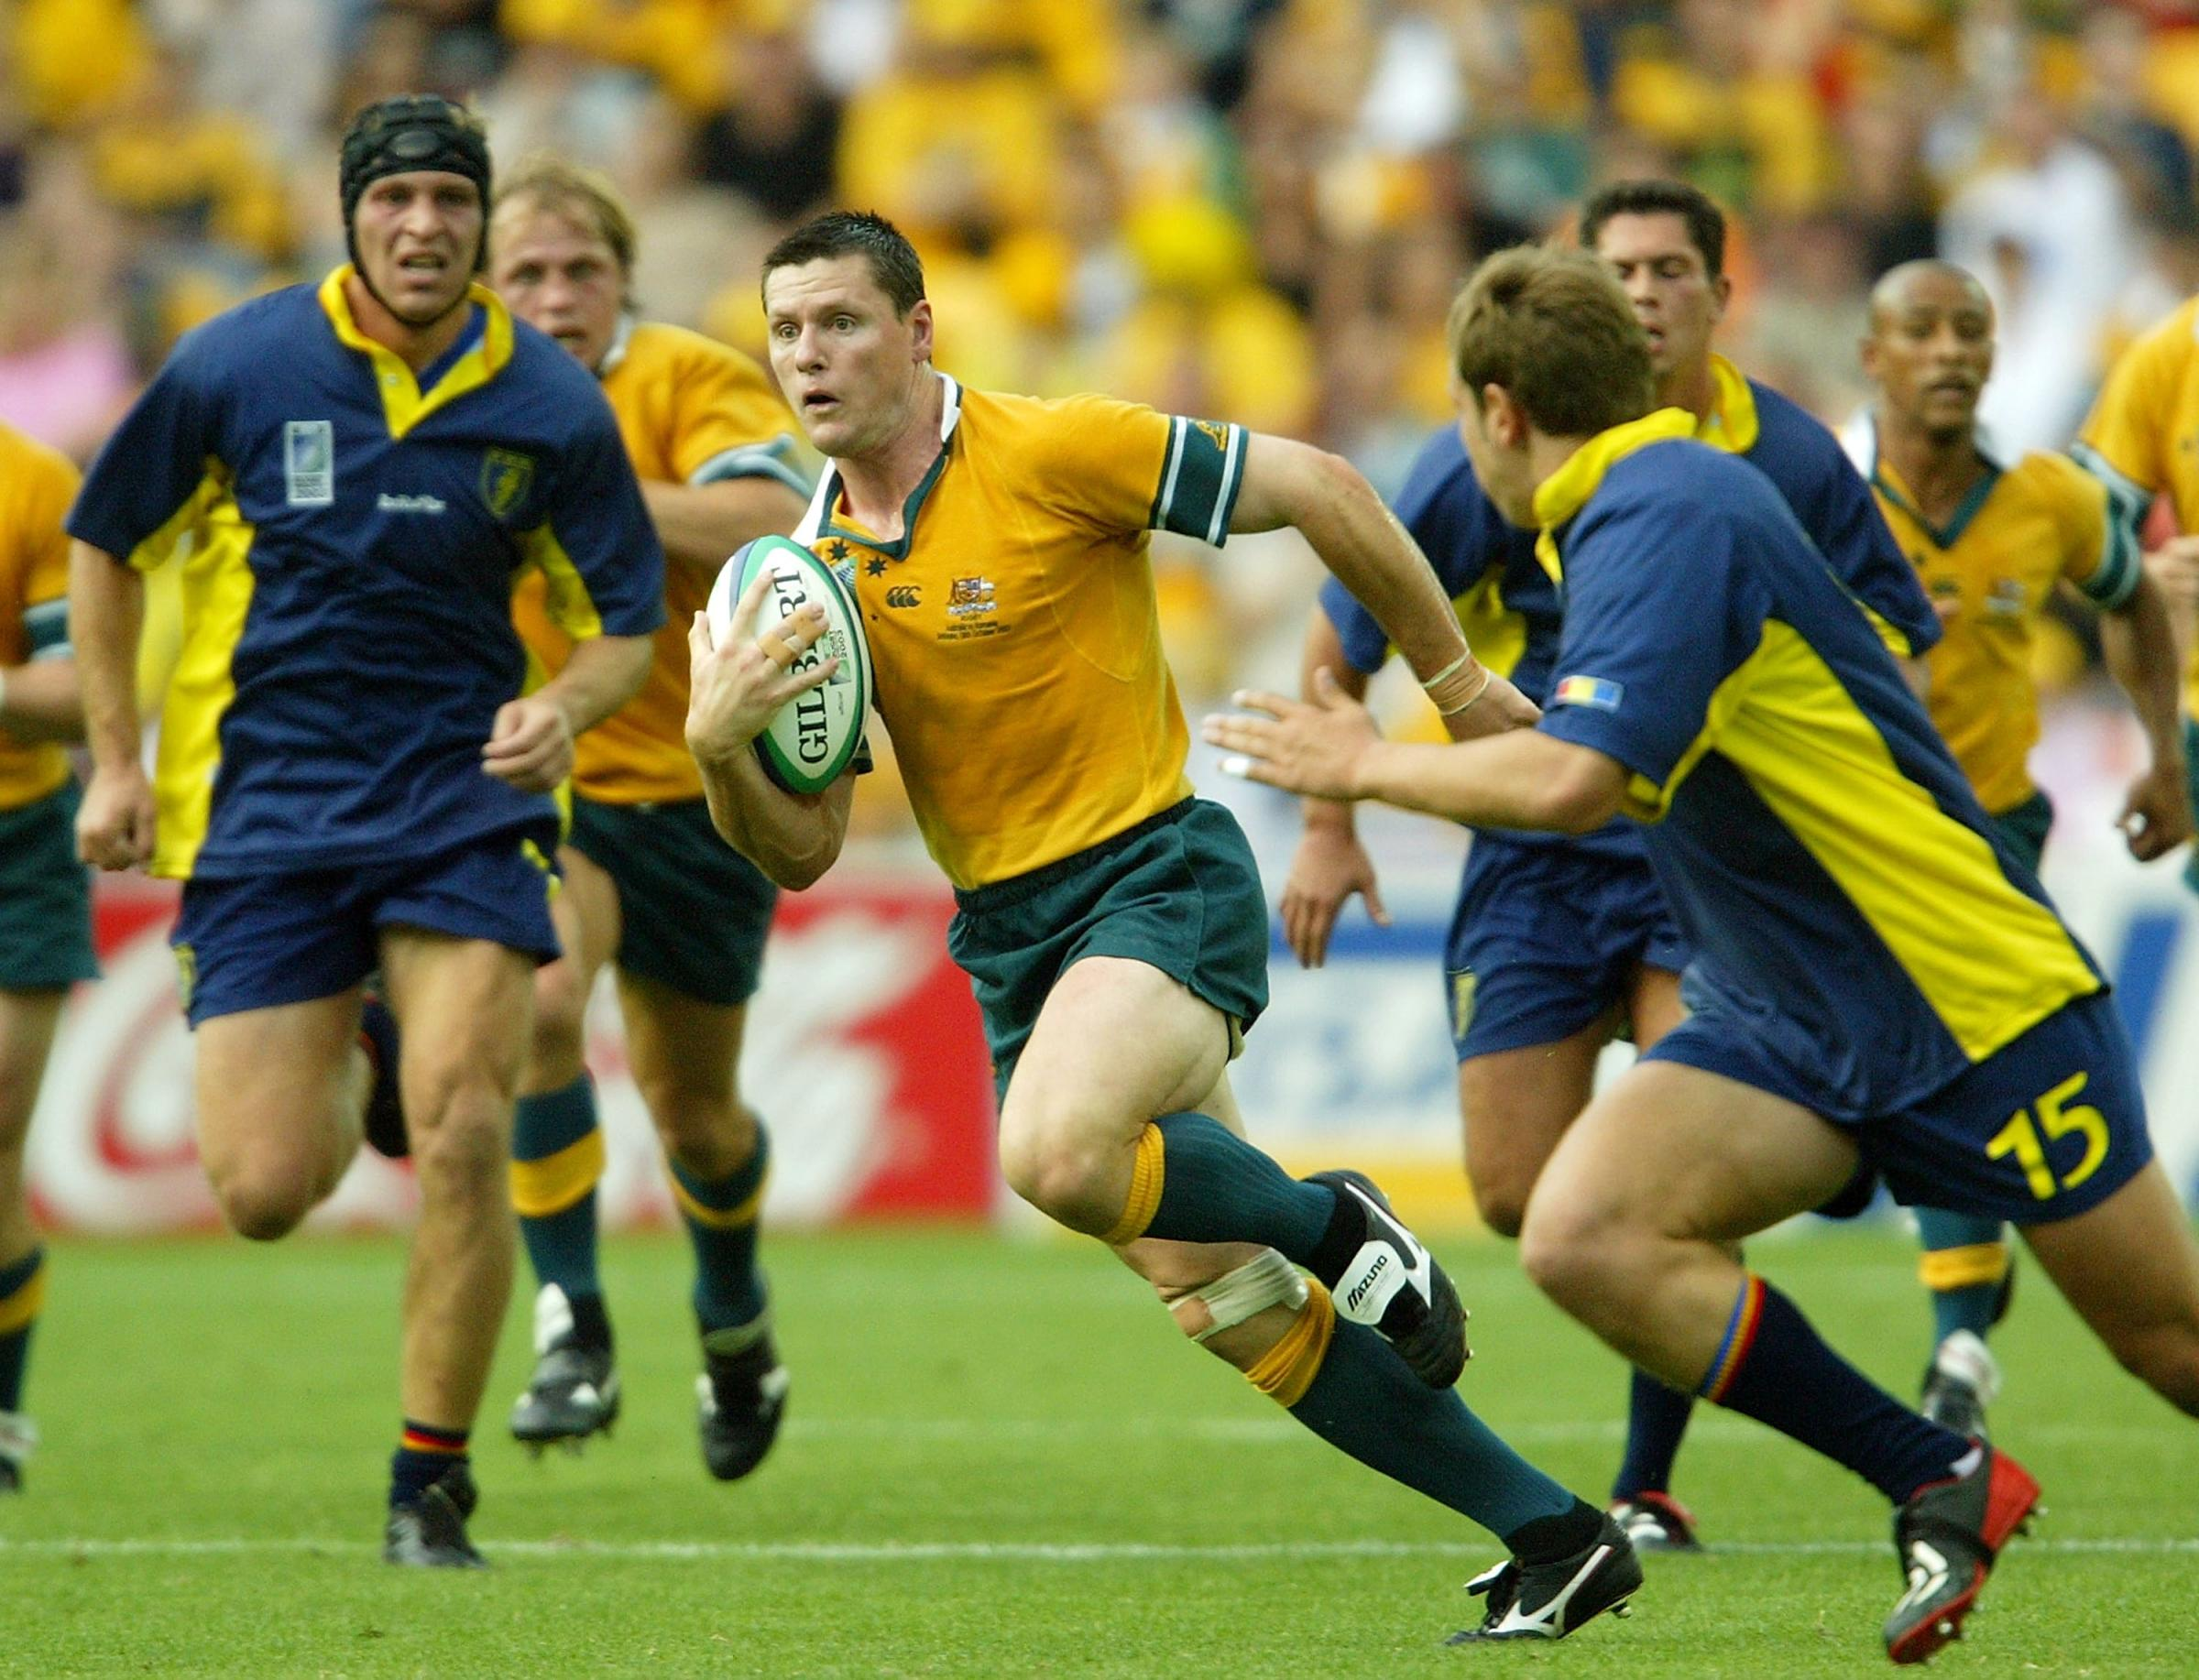 Burke won 88 caps for the Wallabies, won the World Cup in 1999, and scored 878 international points